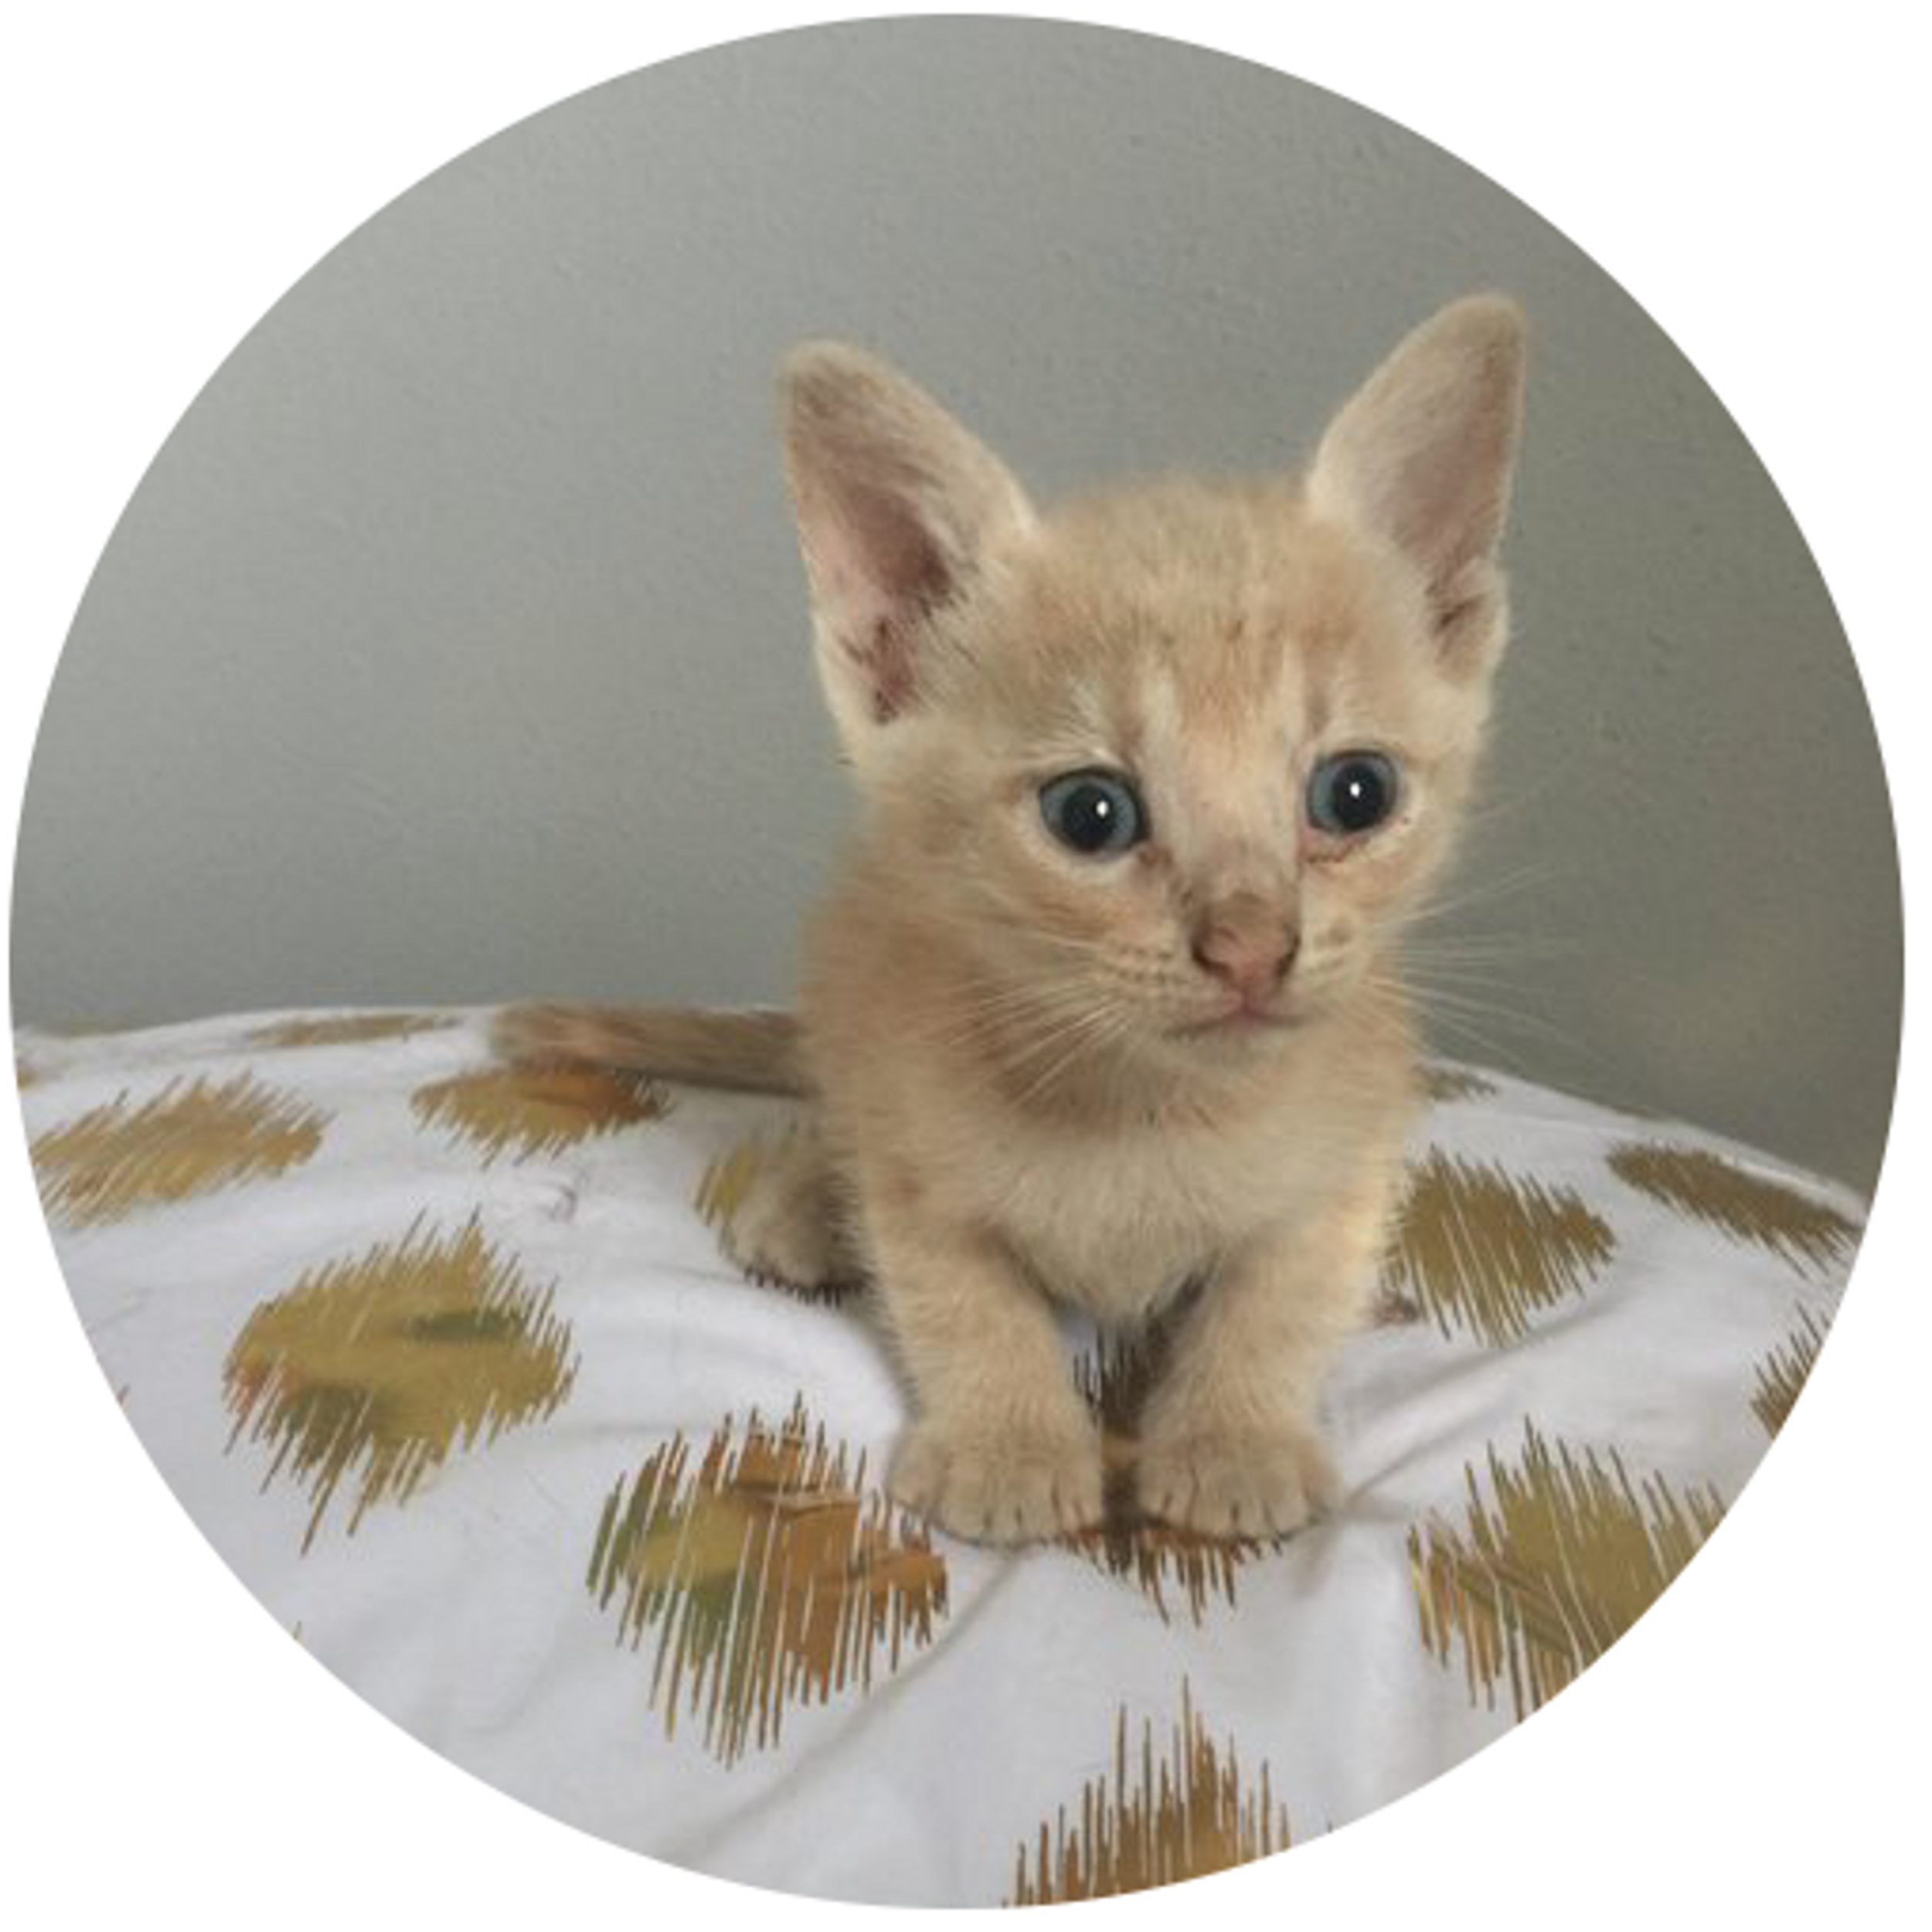 Ethical + Sustainable Cat Care - October 9th, 2019